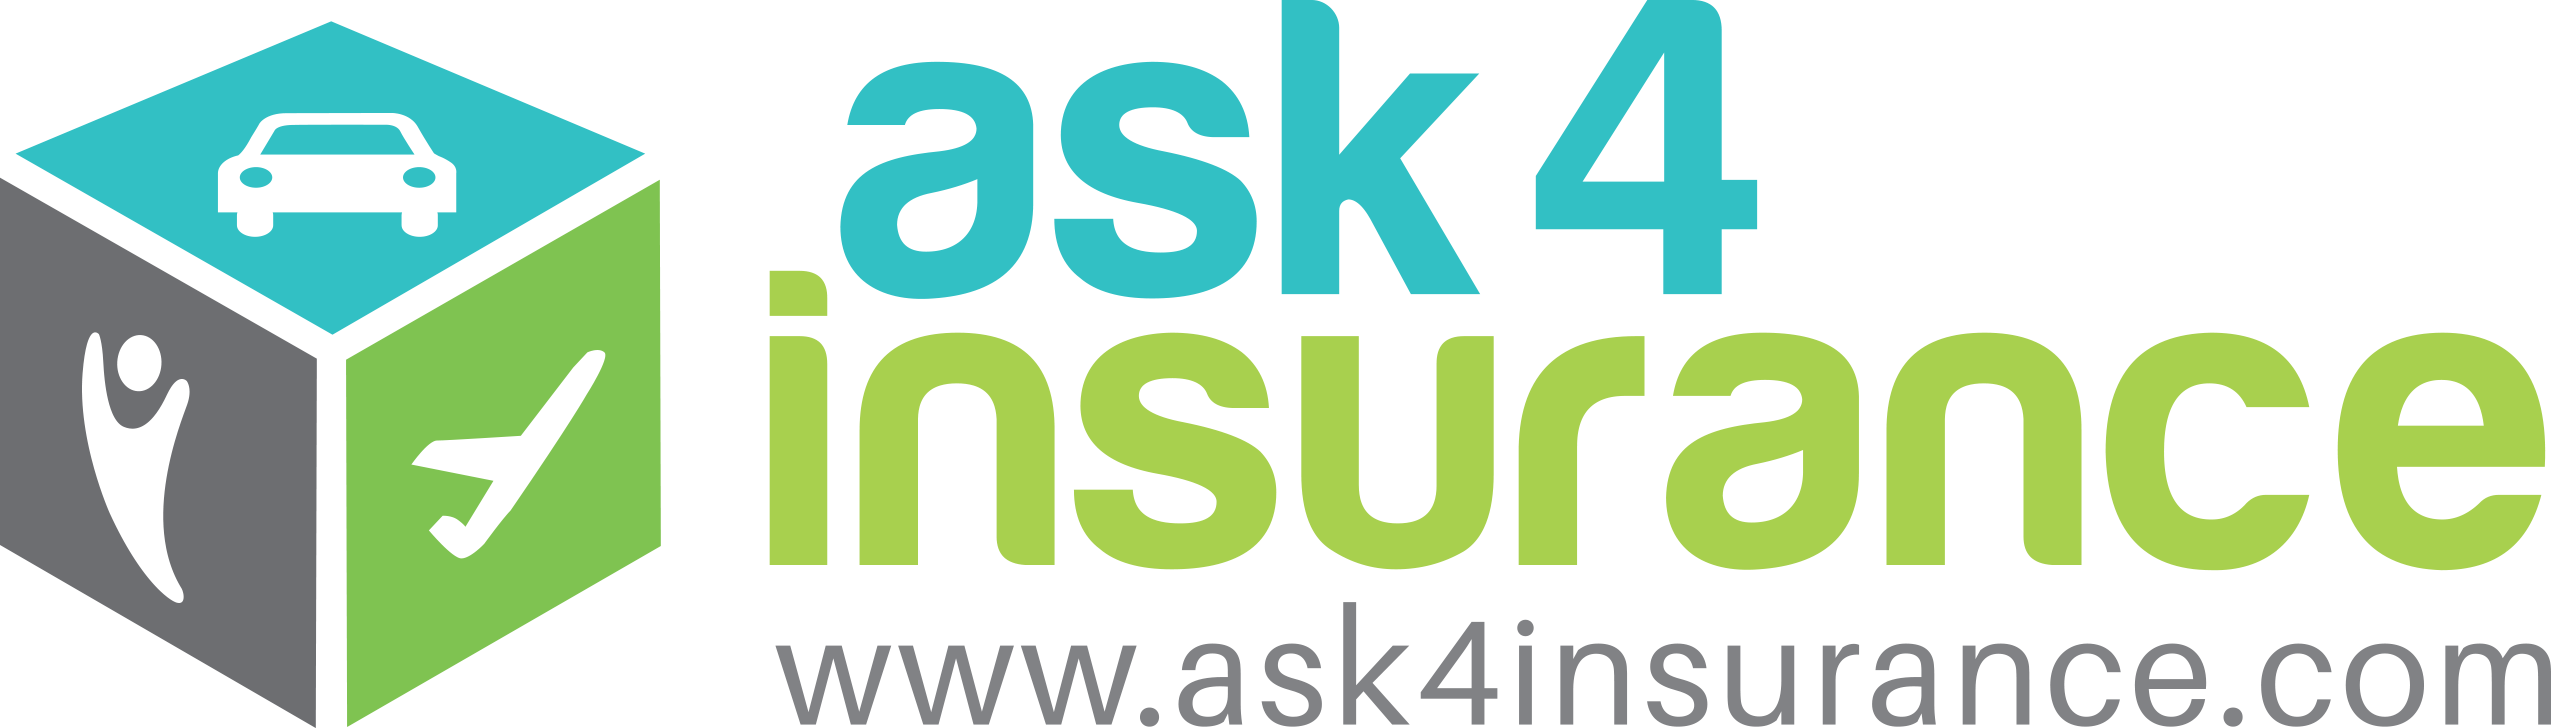 Ask4insurance